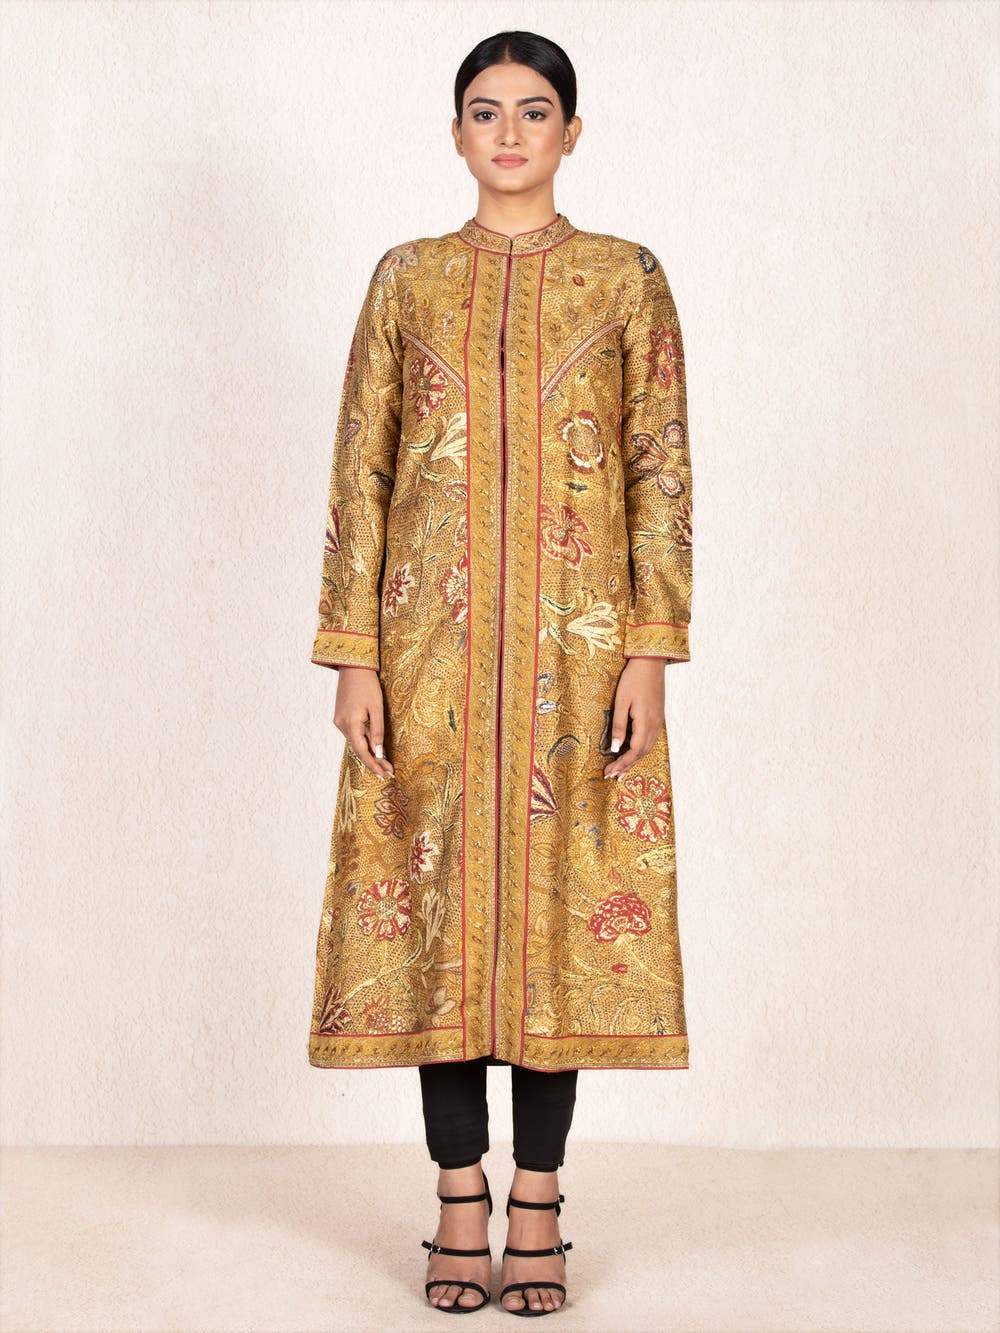 Ochre & Beige Mughal Love Story Embroidered Jacket